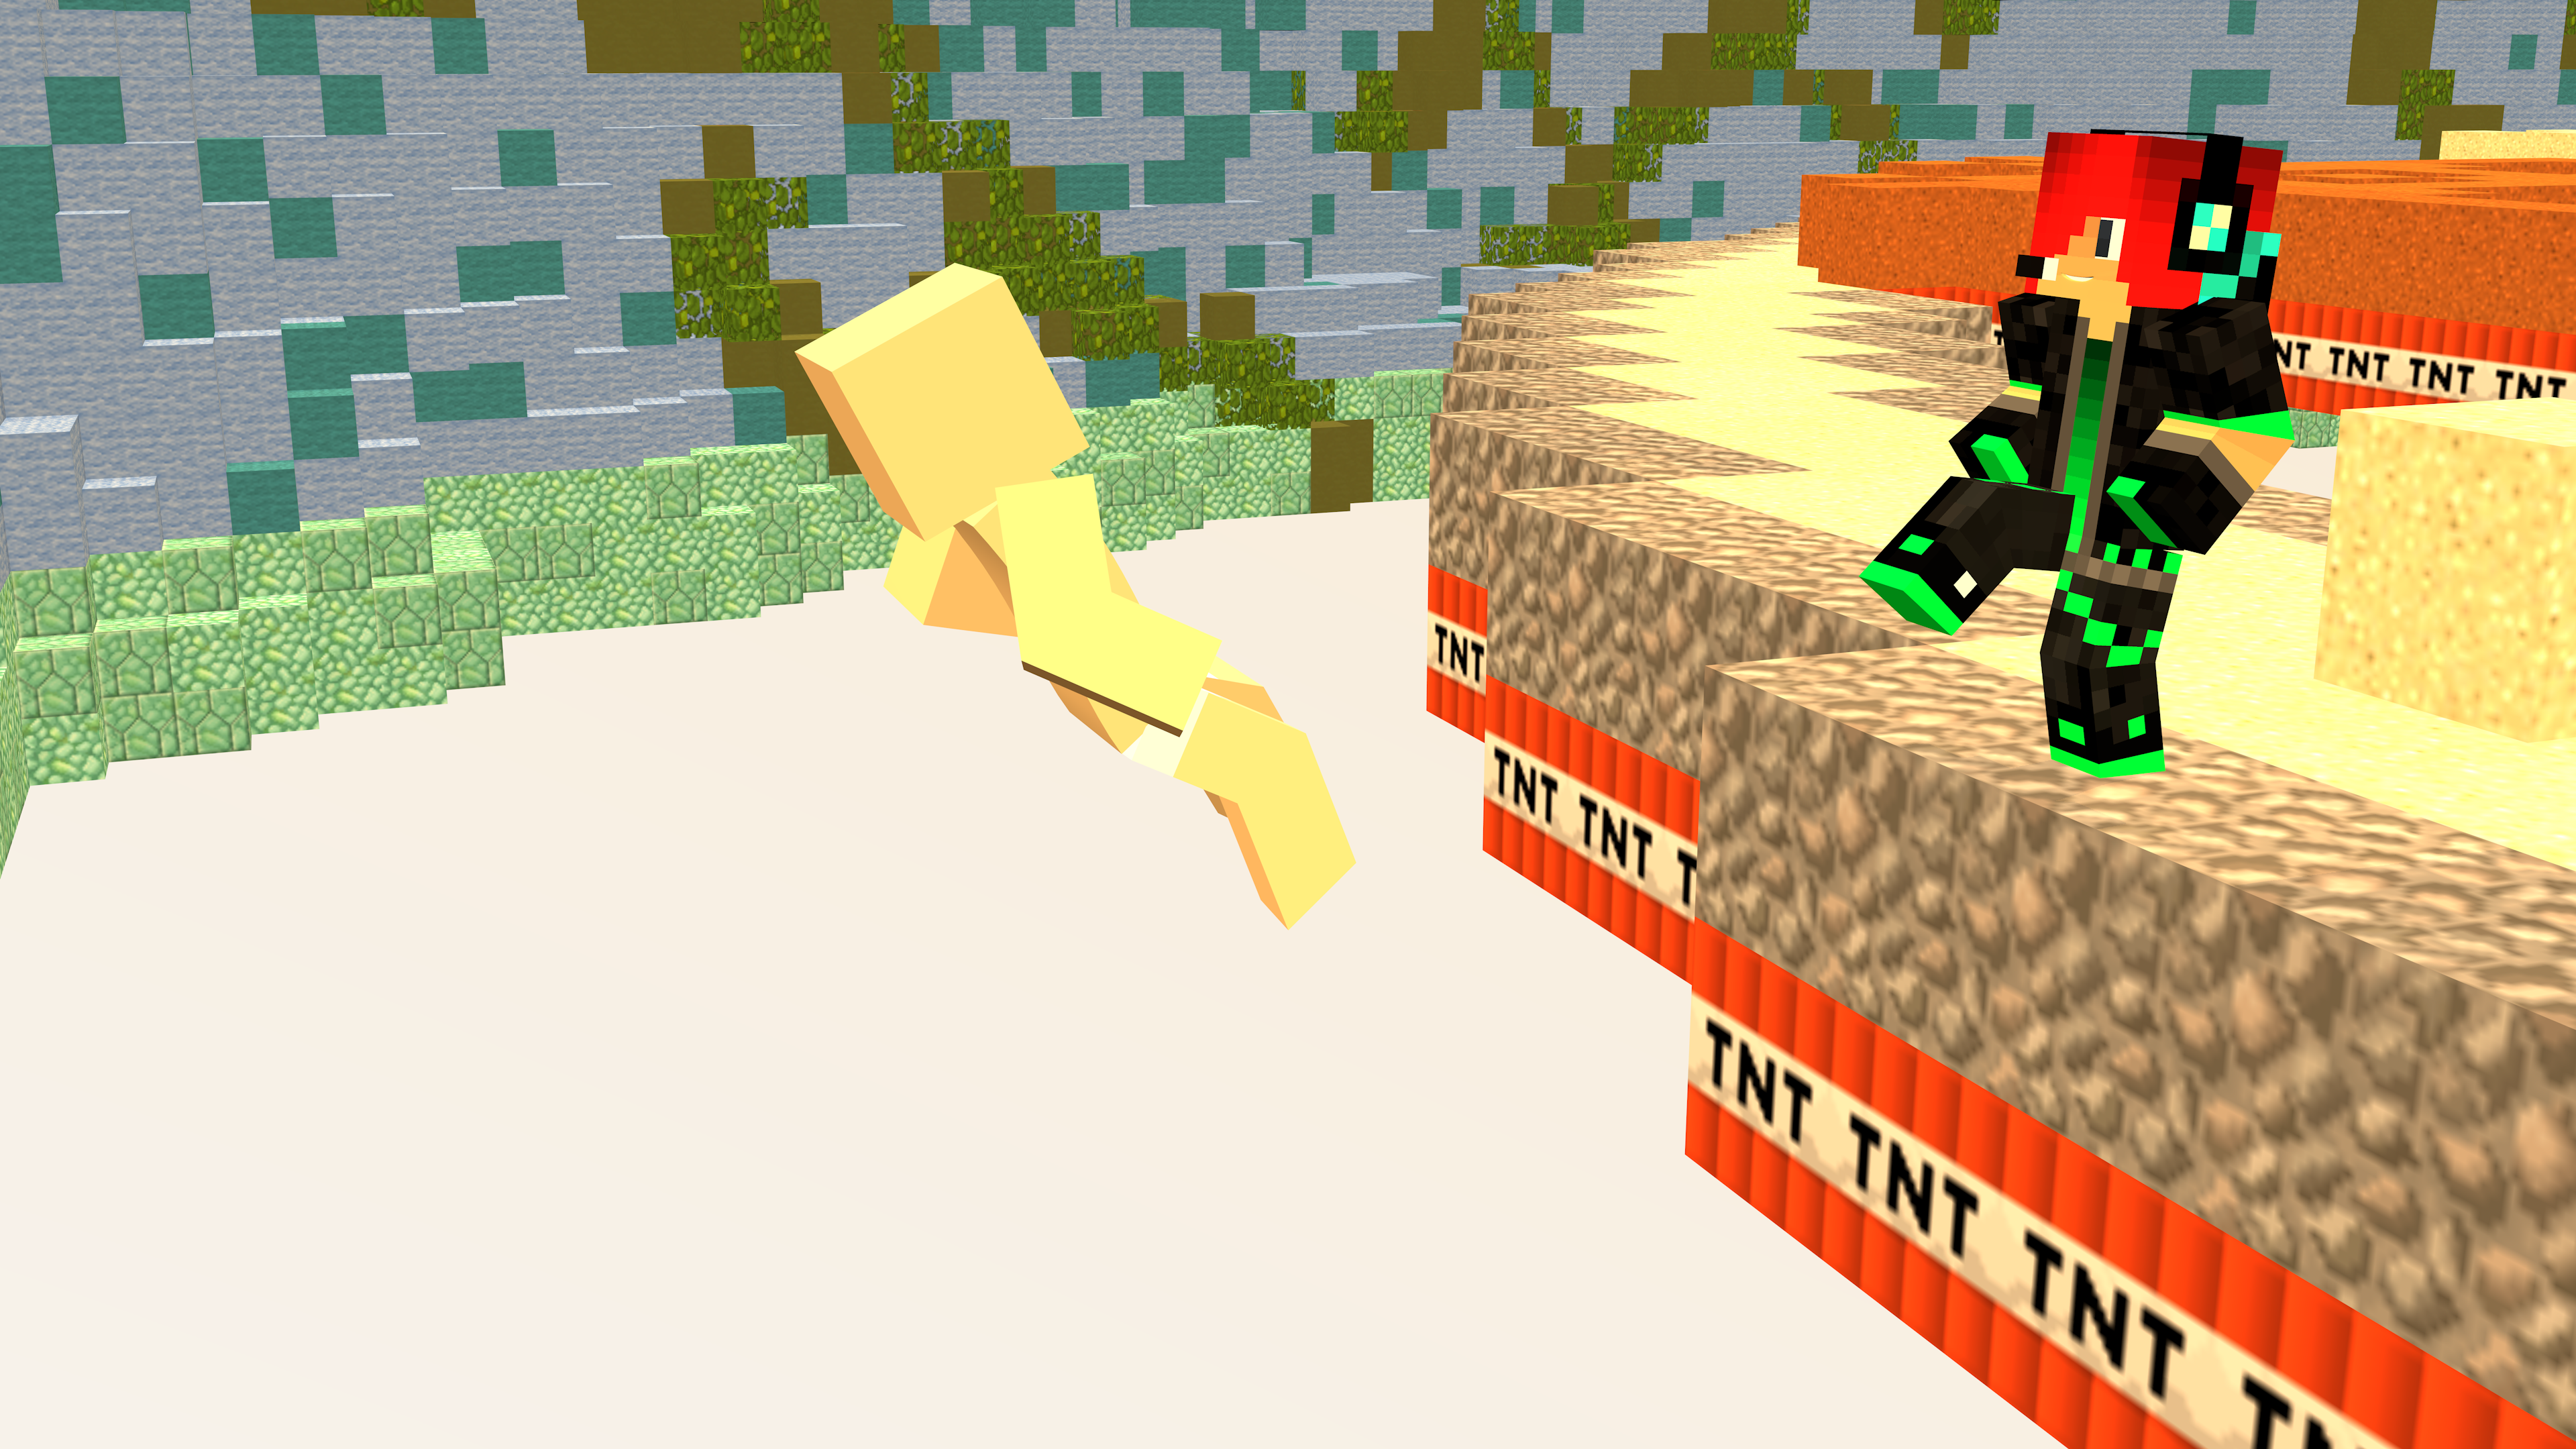 TNT run derpy guy falling off.png